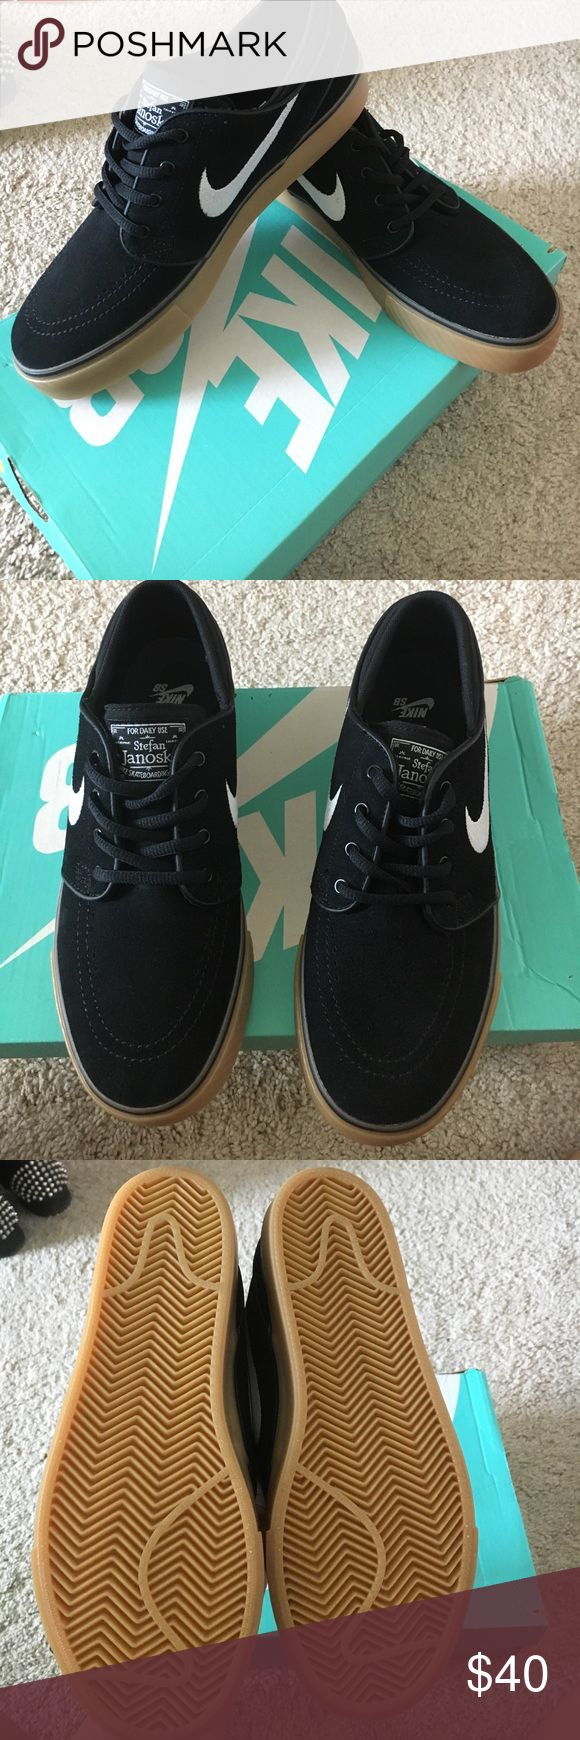 NWT JANOSKI SKATE SHOES 2 pairs available. women's 8.5 and women's 7.5. Gum soles for better grip, skate shoe. Brand new, does not come with box. Price is firm, these have never been worn the 7.5 was worn inside the house. Message me any questions you might have. ((These sizes are converted from boys' sizes. Nike Shoes Athletic Shoes